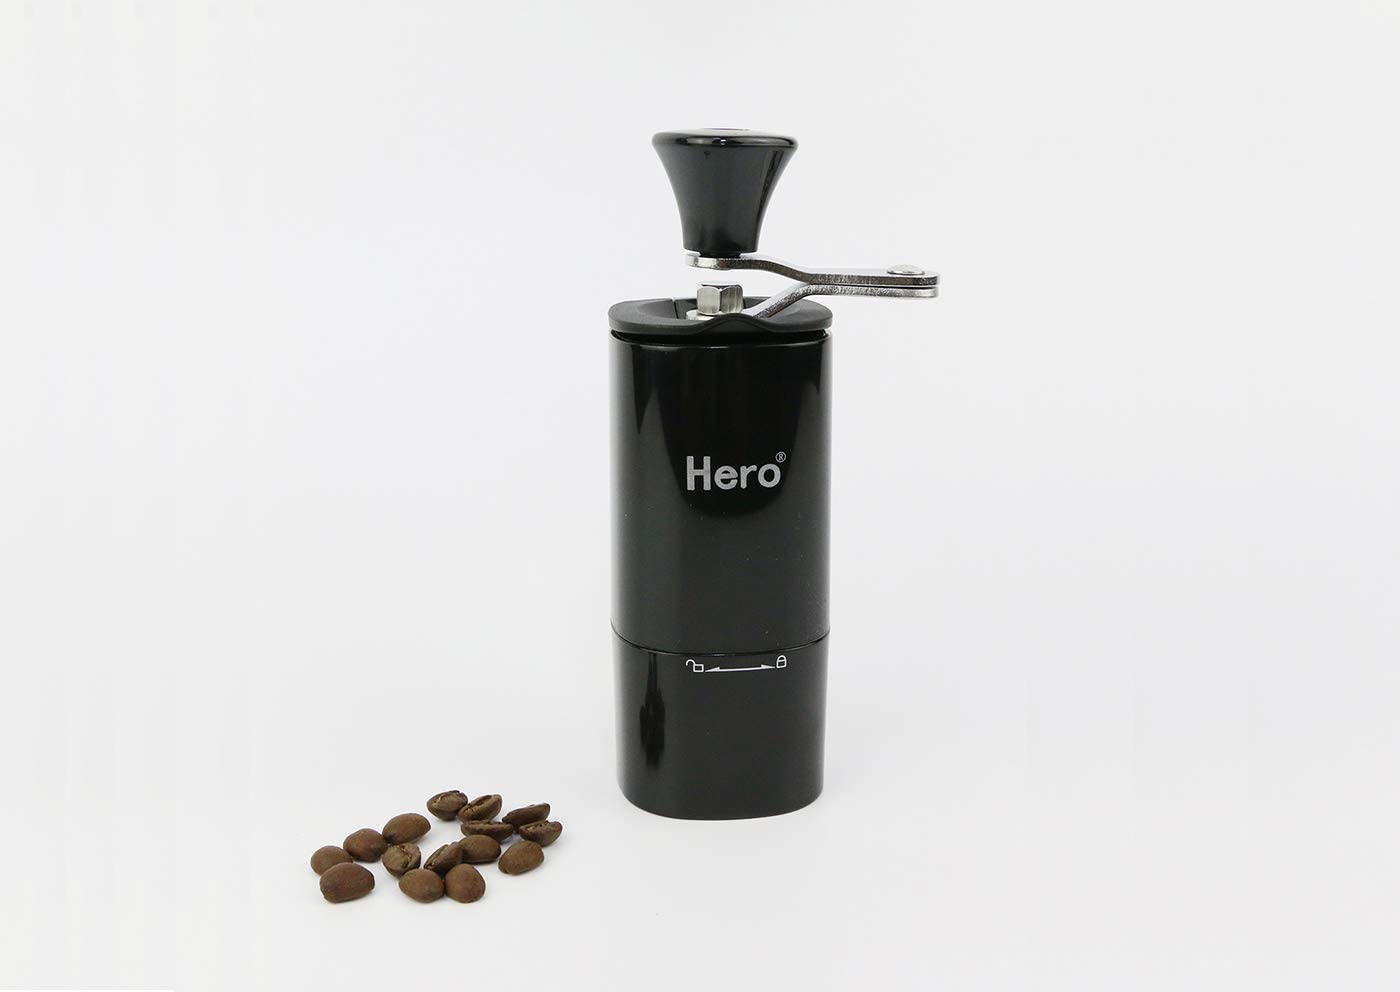 Manual Coffee Grinder - Portable Hand Coffee Mill With Conical Ceramic Burrs and Foldable Handle Super Light Hand Coffee Grinder for Espresso French Press, Cold Brew, Travel Camping